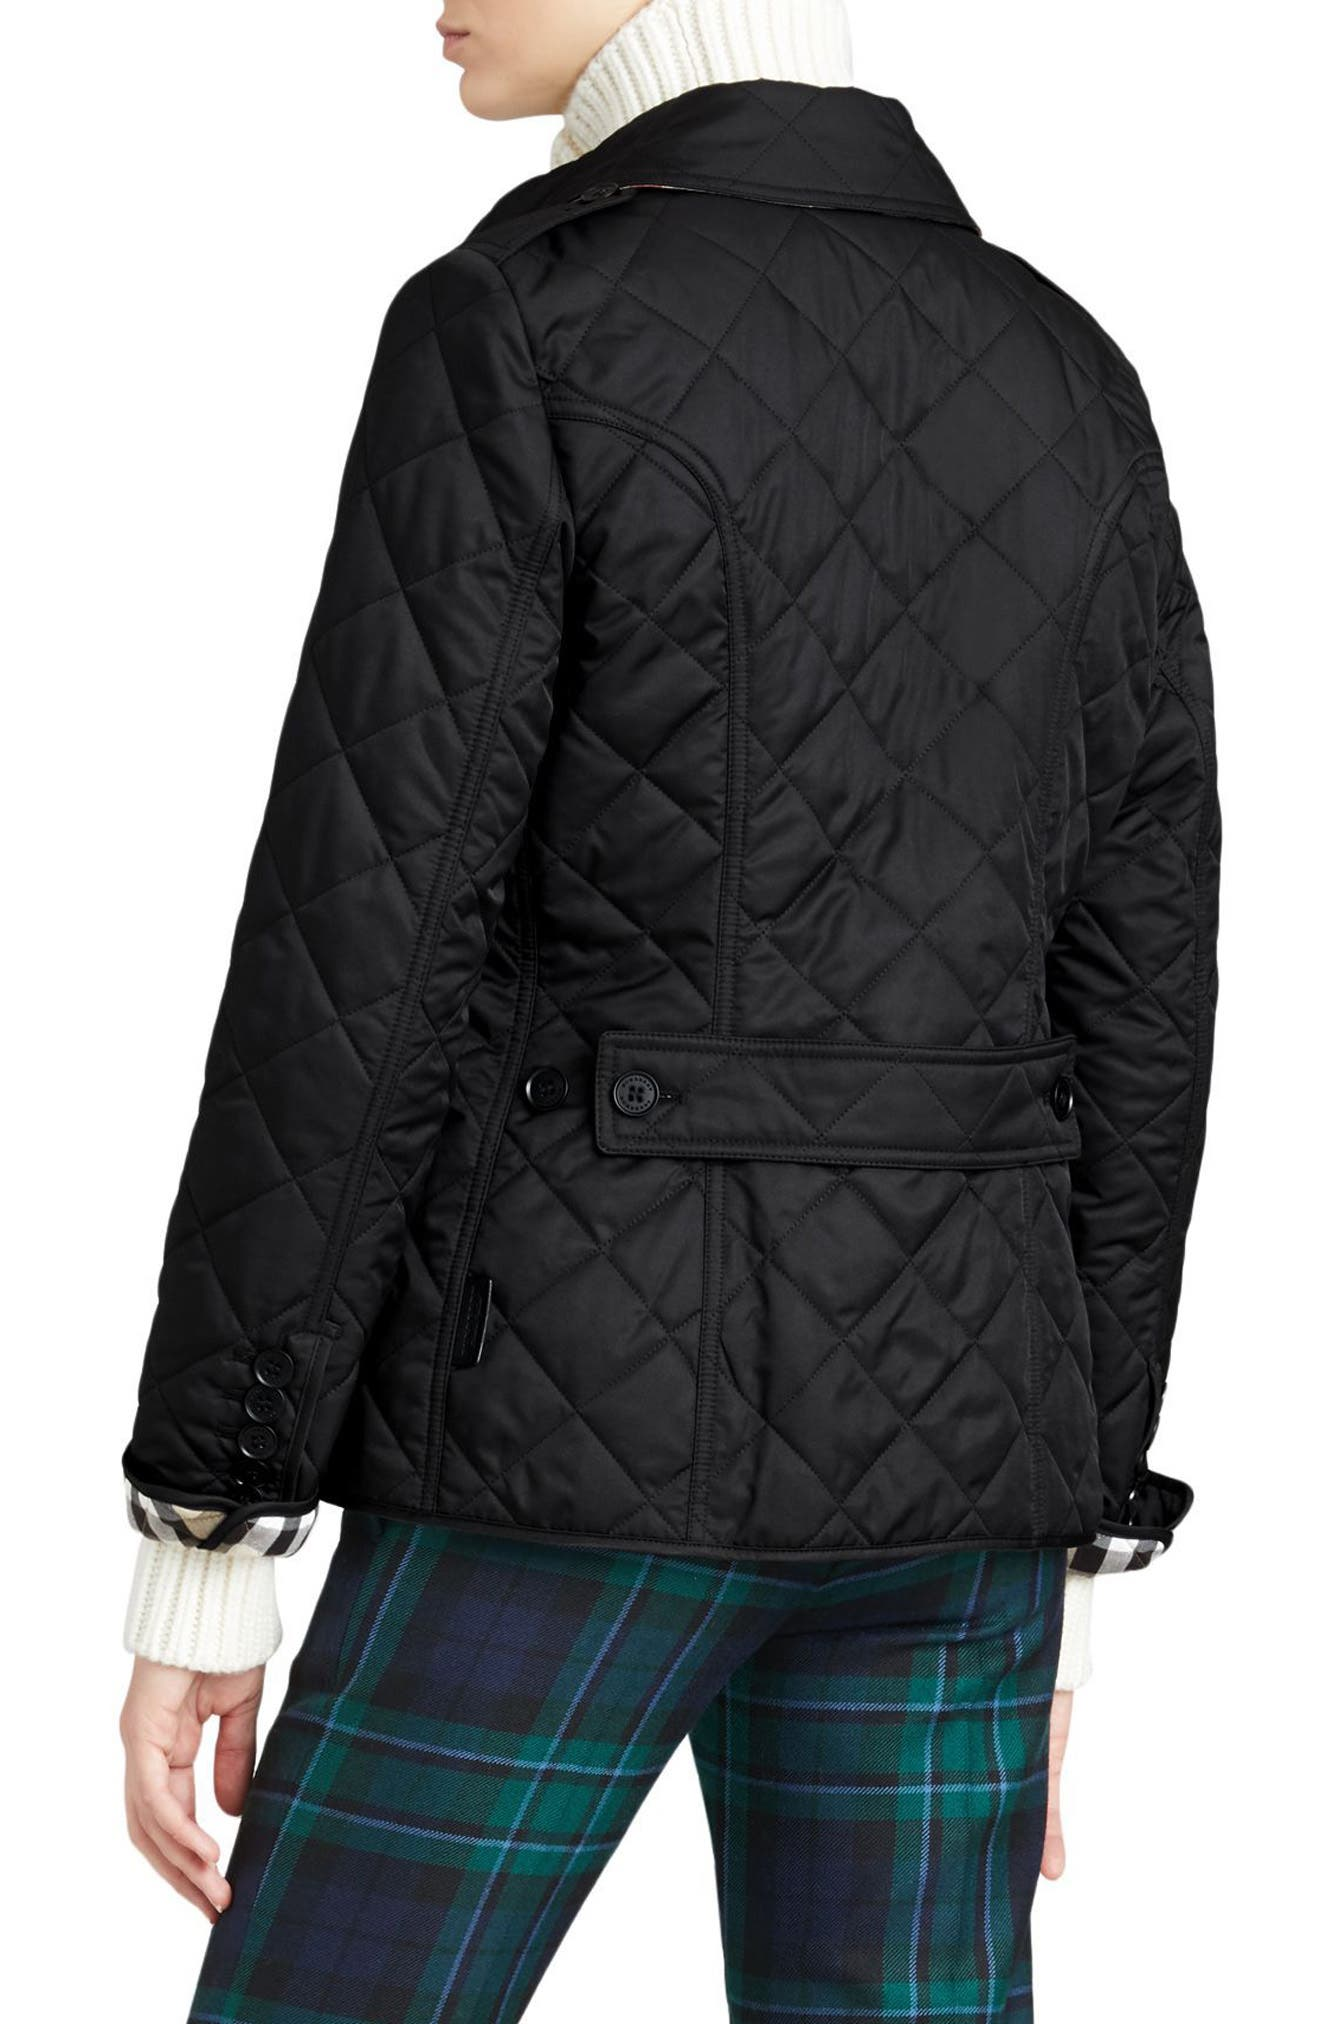 Frankby Quilted Jacket,                             Alternate thumbnail 2, color,                             001